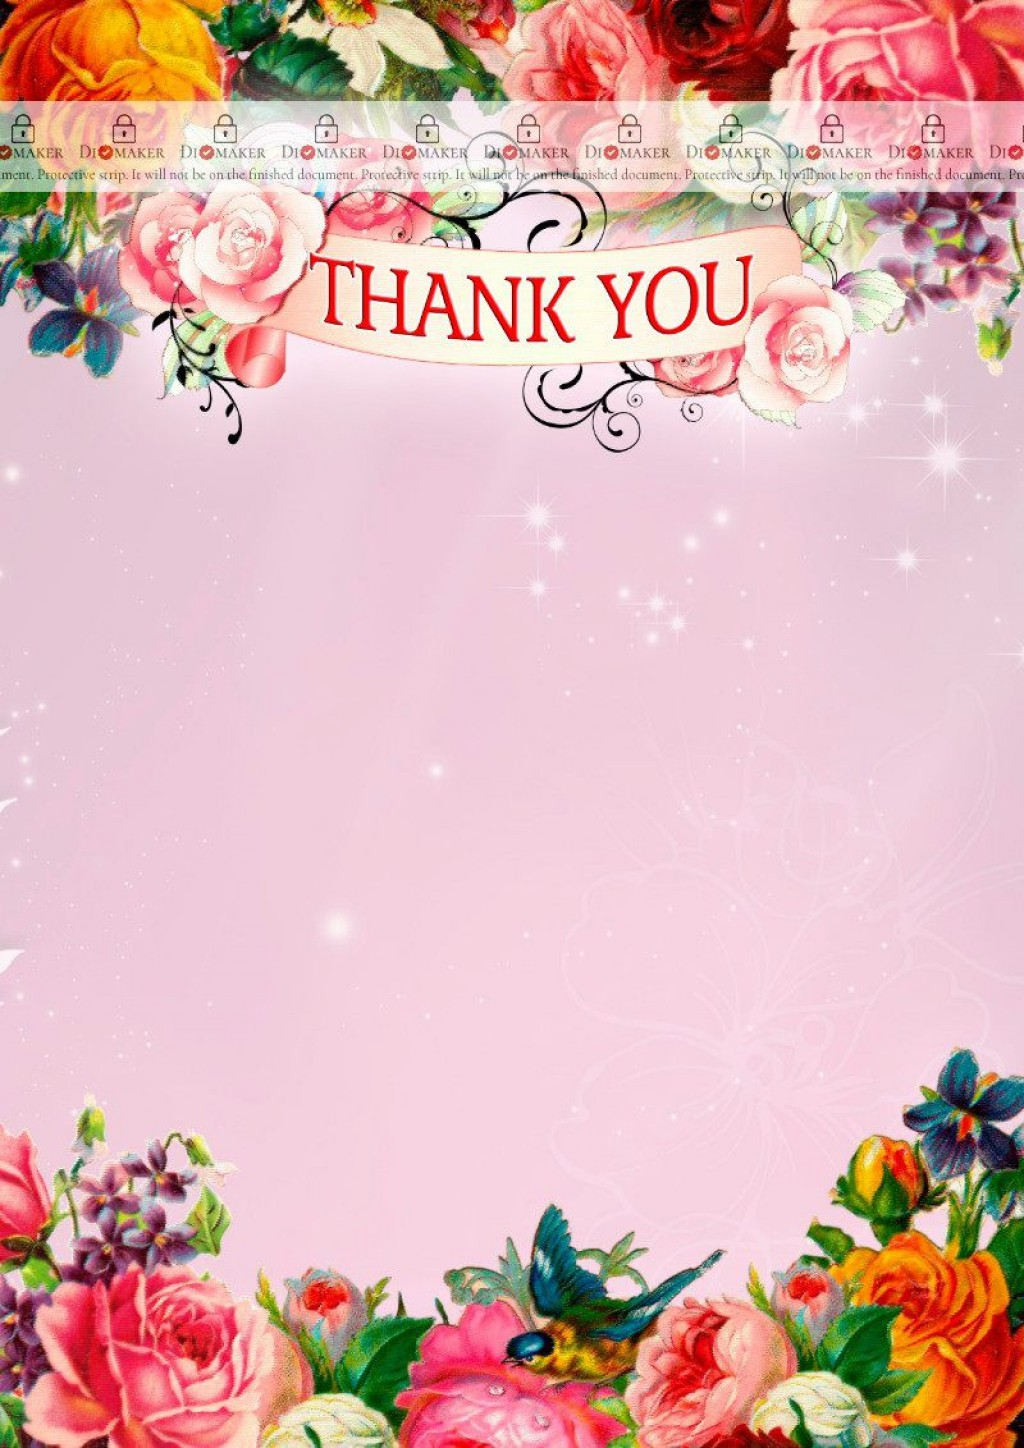 006 Fascinating Thank You Card Template Example  Wedding Busines Word FreeLarge